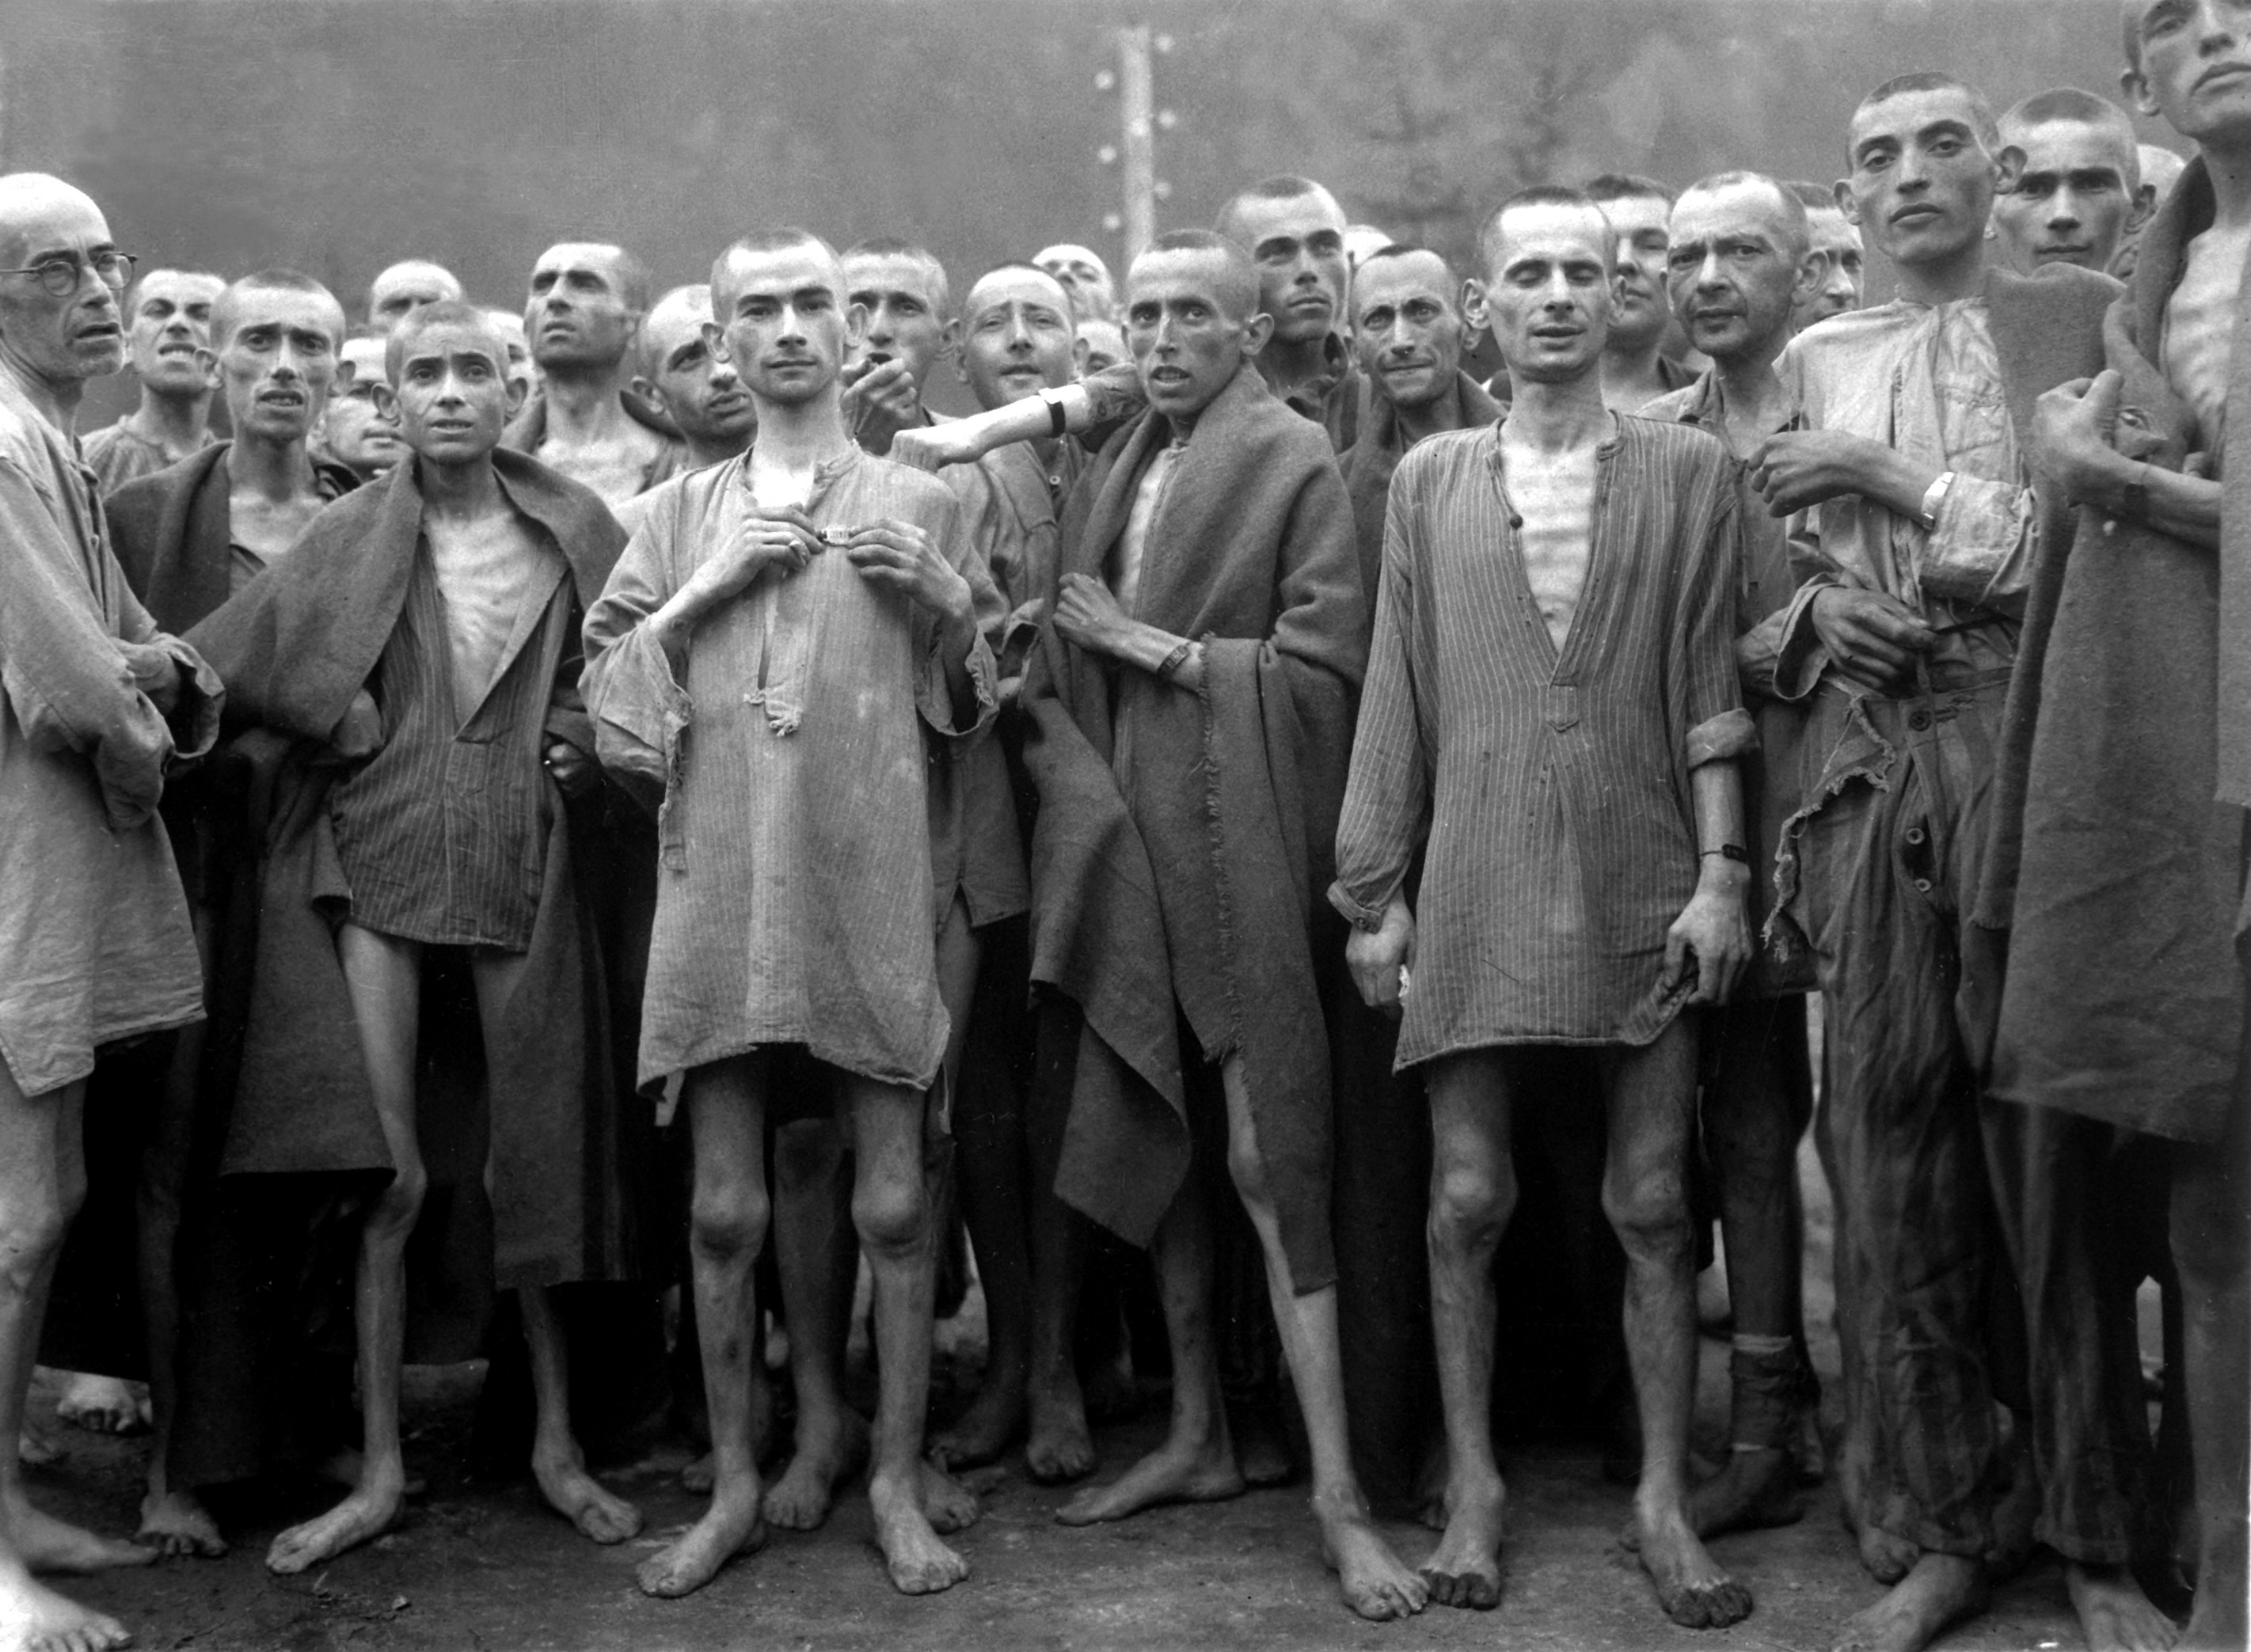 Nazi concentration camps - Wikipedia